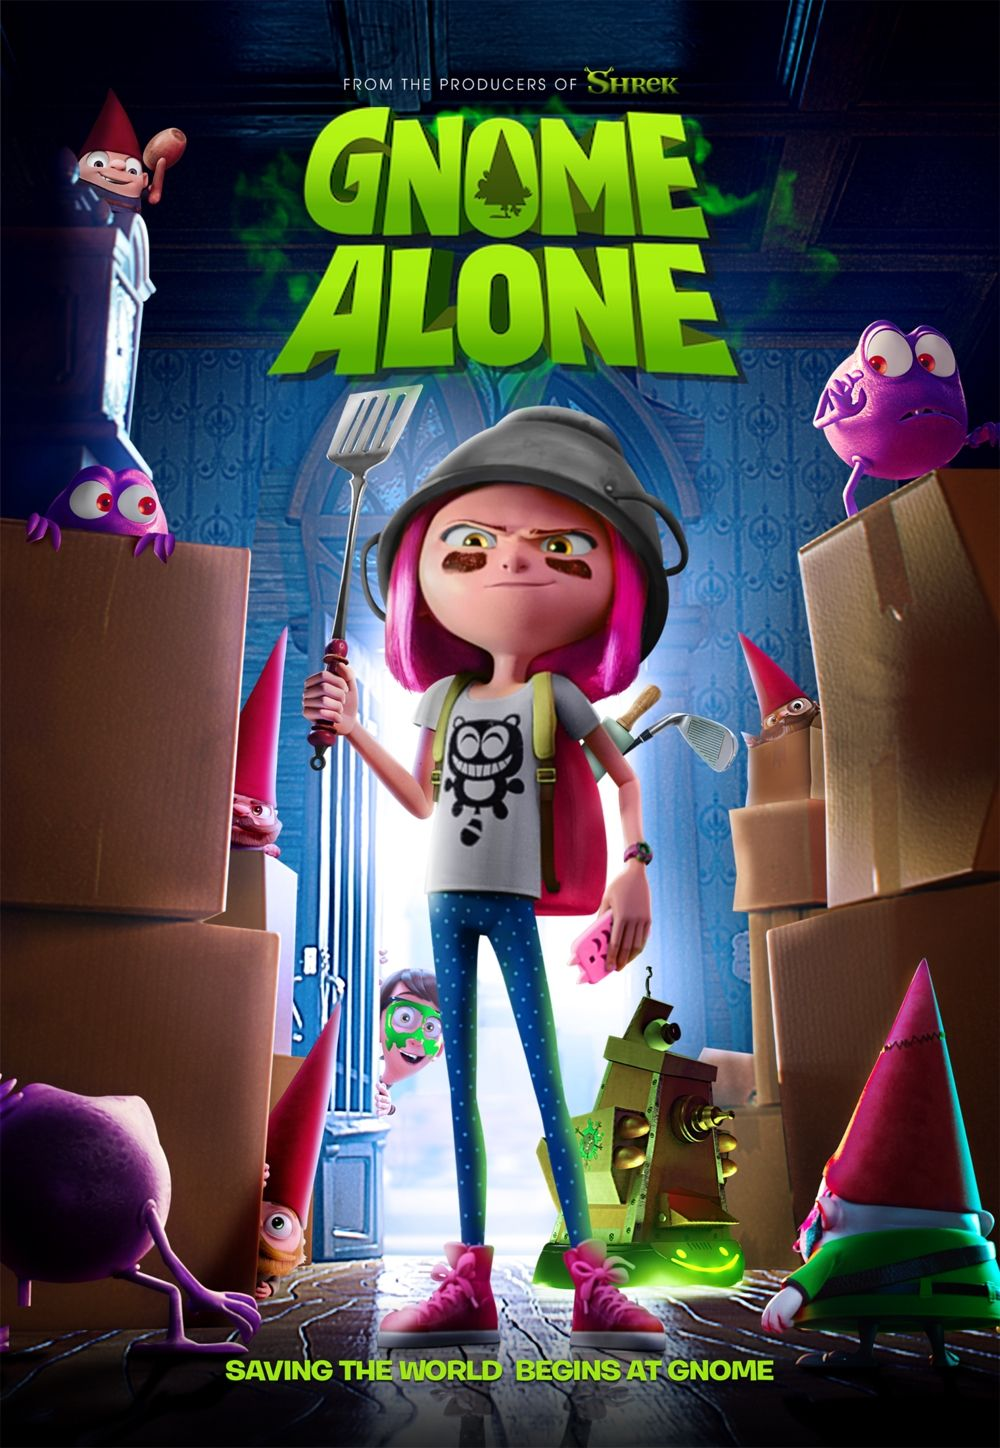 Gnome Alone Alone movies, Childrens movies, Happy movie